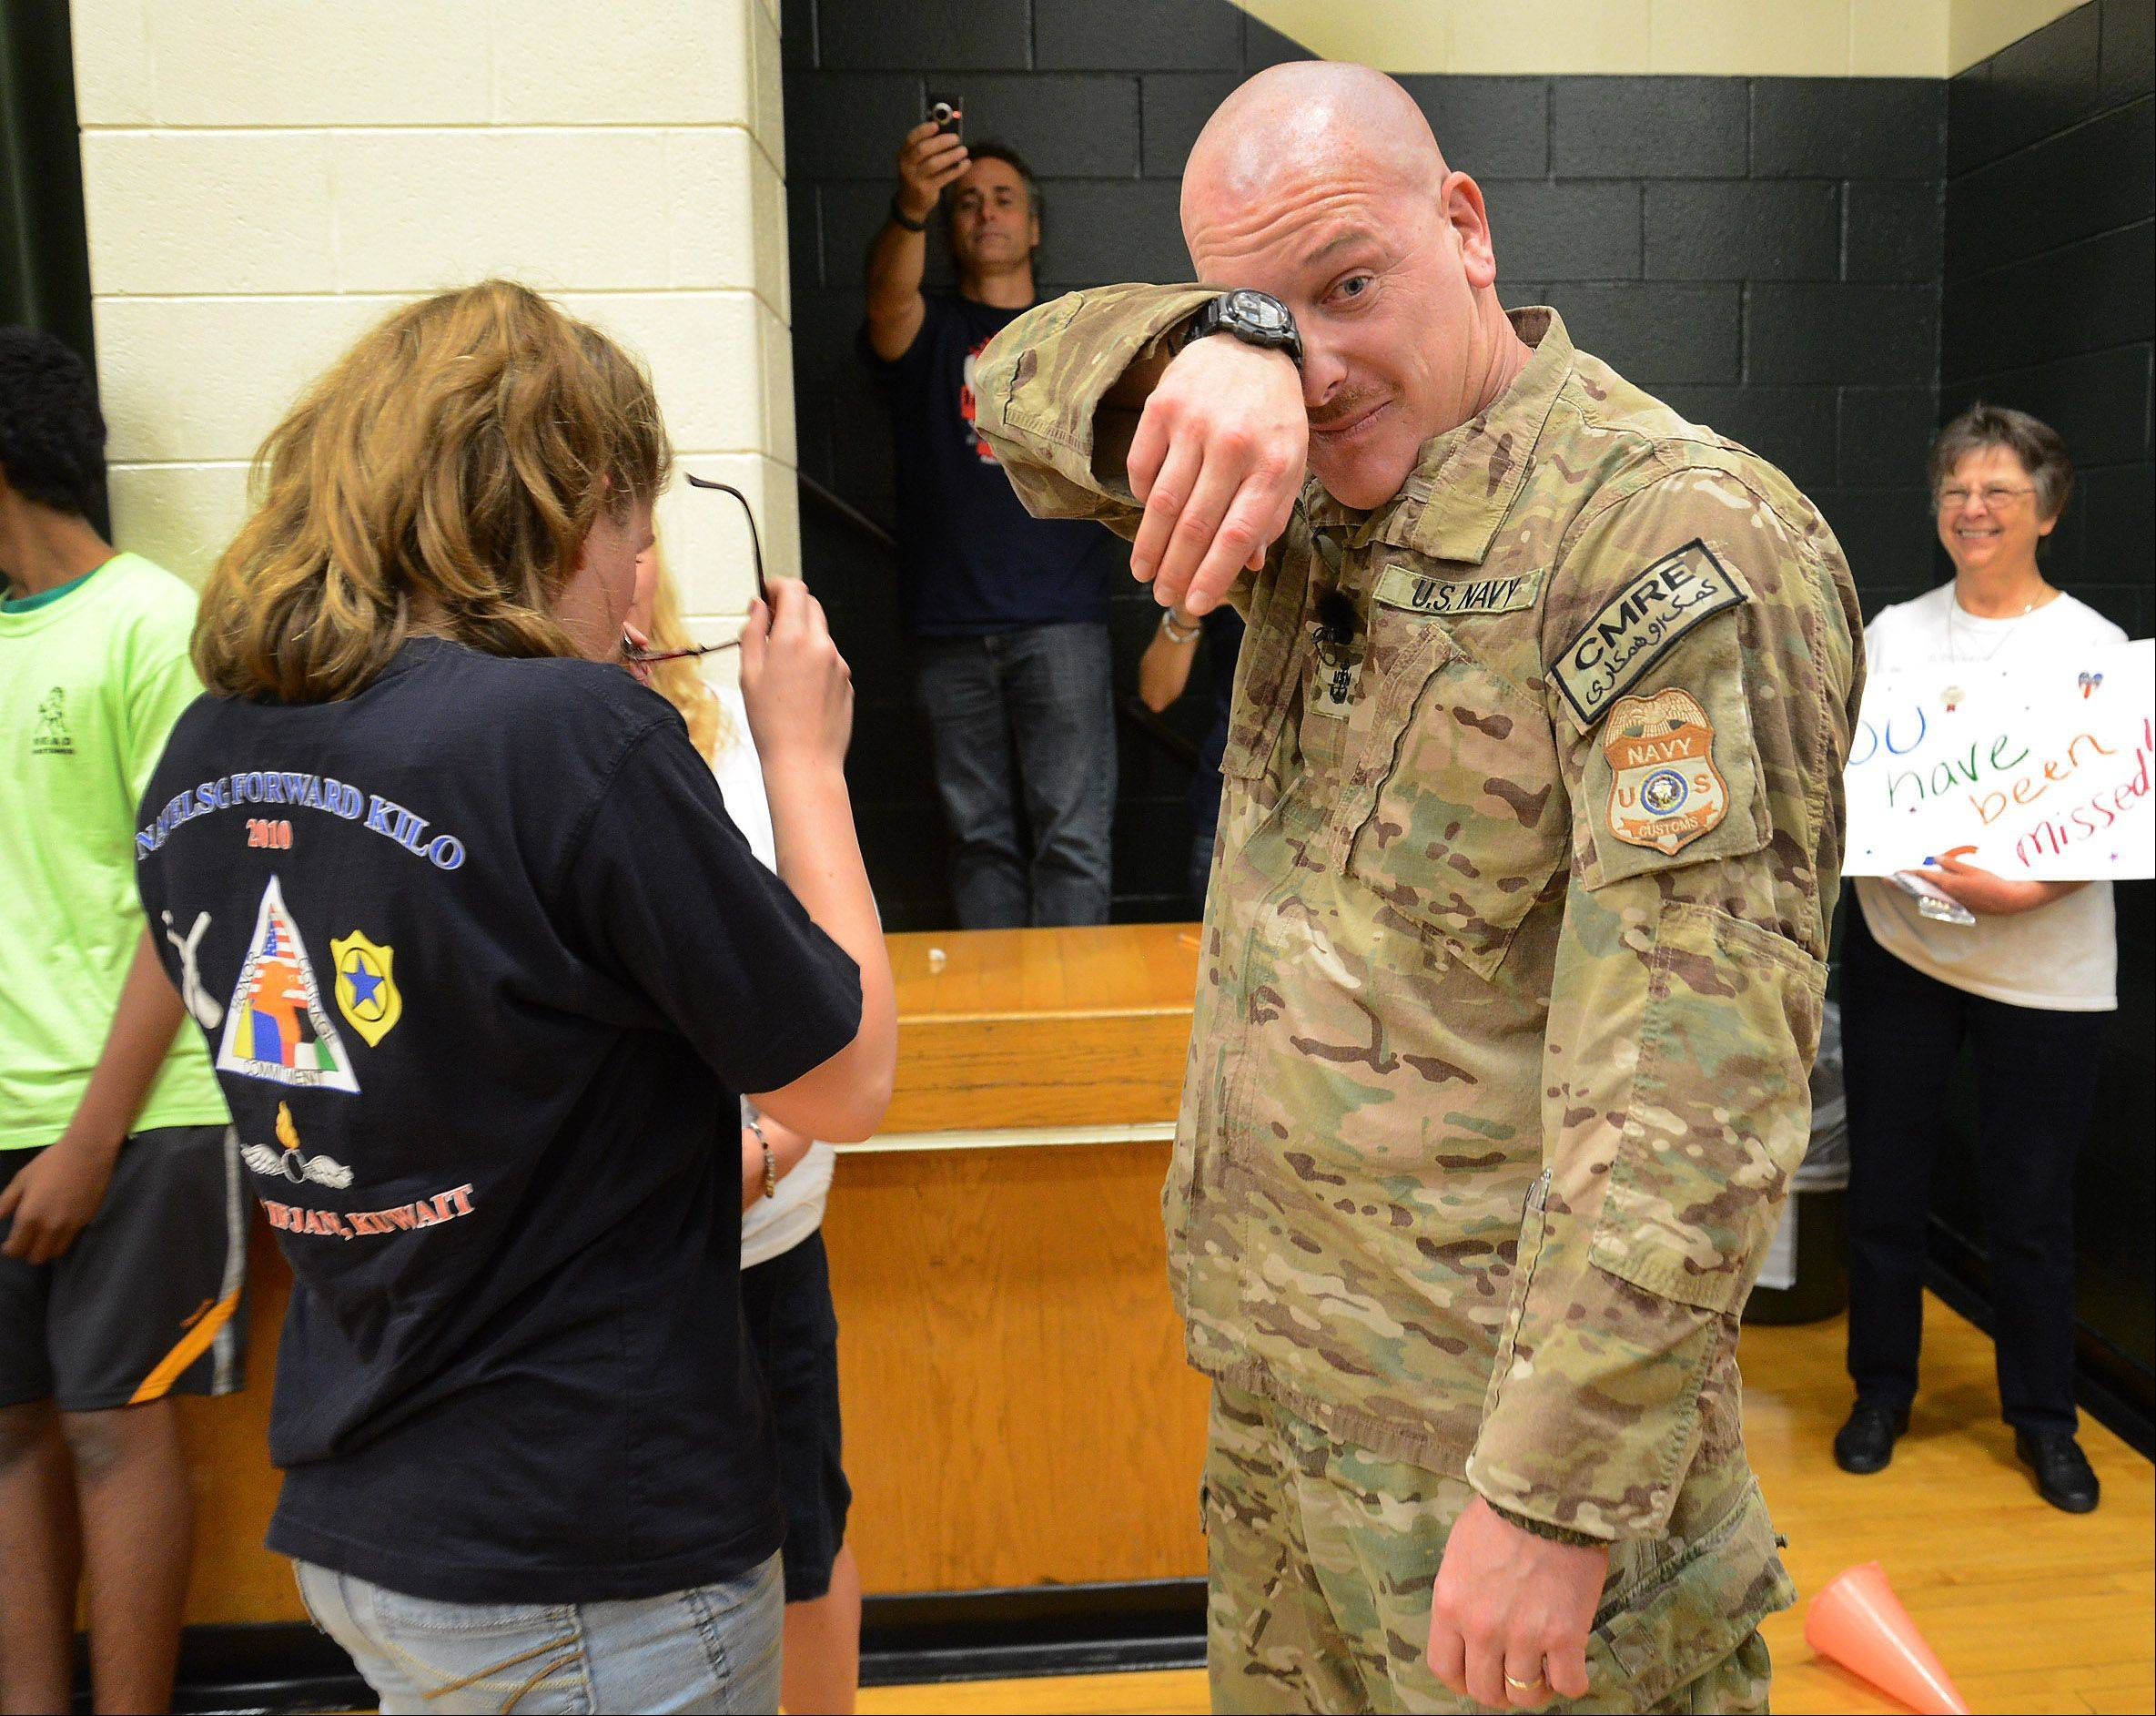 Navy Chief Gunner's Mate Patrick Fissette wipes away tears as he surprises his daughter, Kailey, at Mead Junior High School in Elk Grove Village Friday after returning home from his last tour of duty.